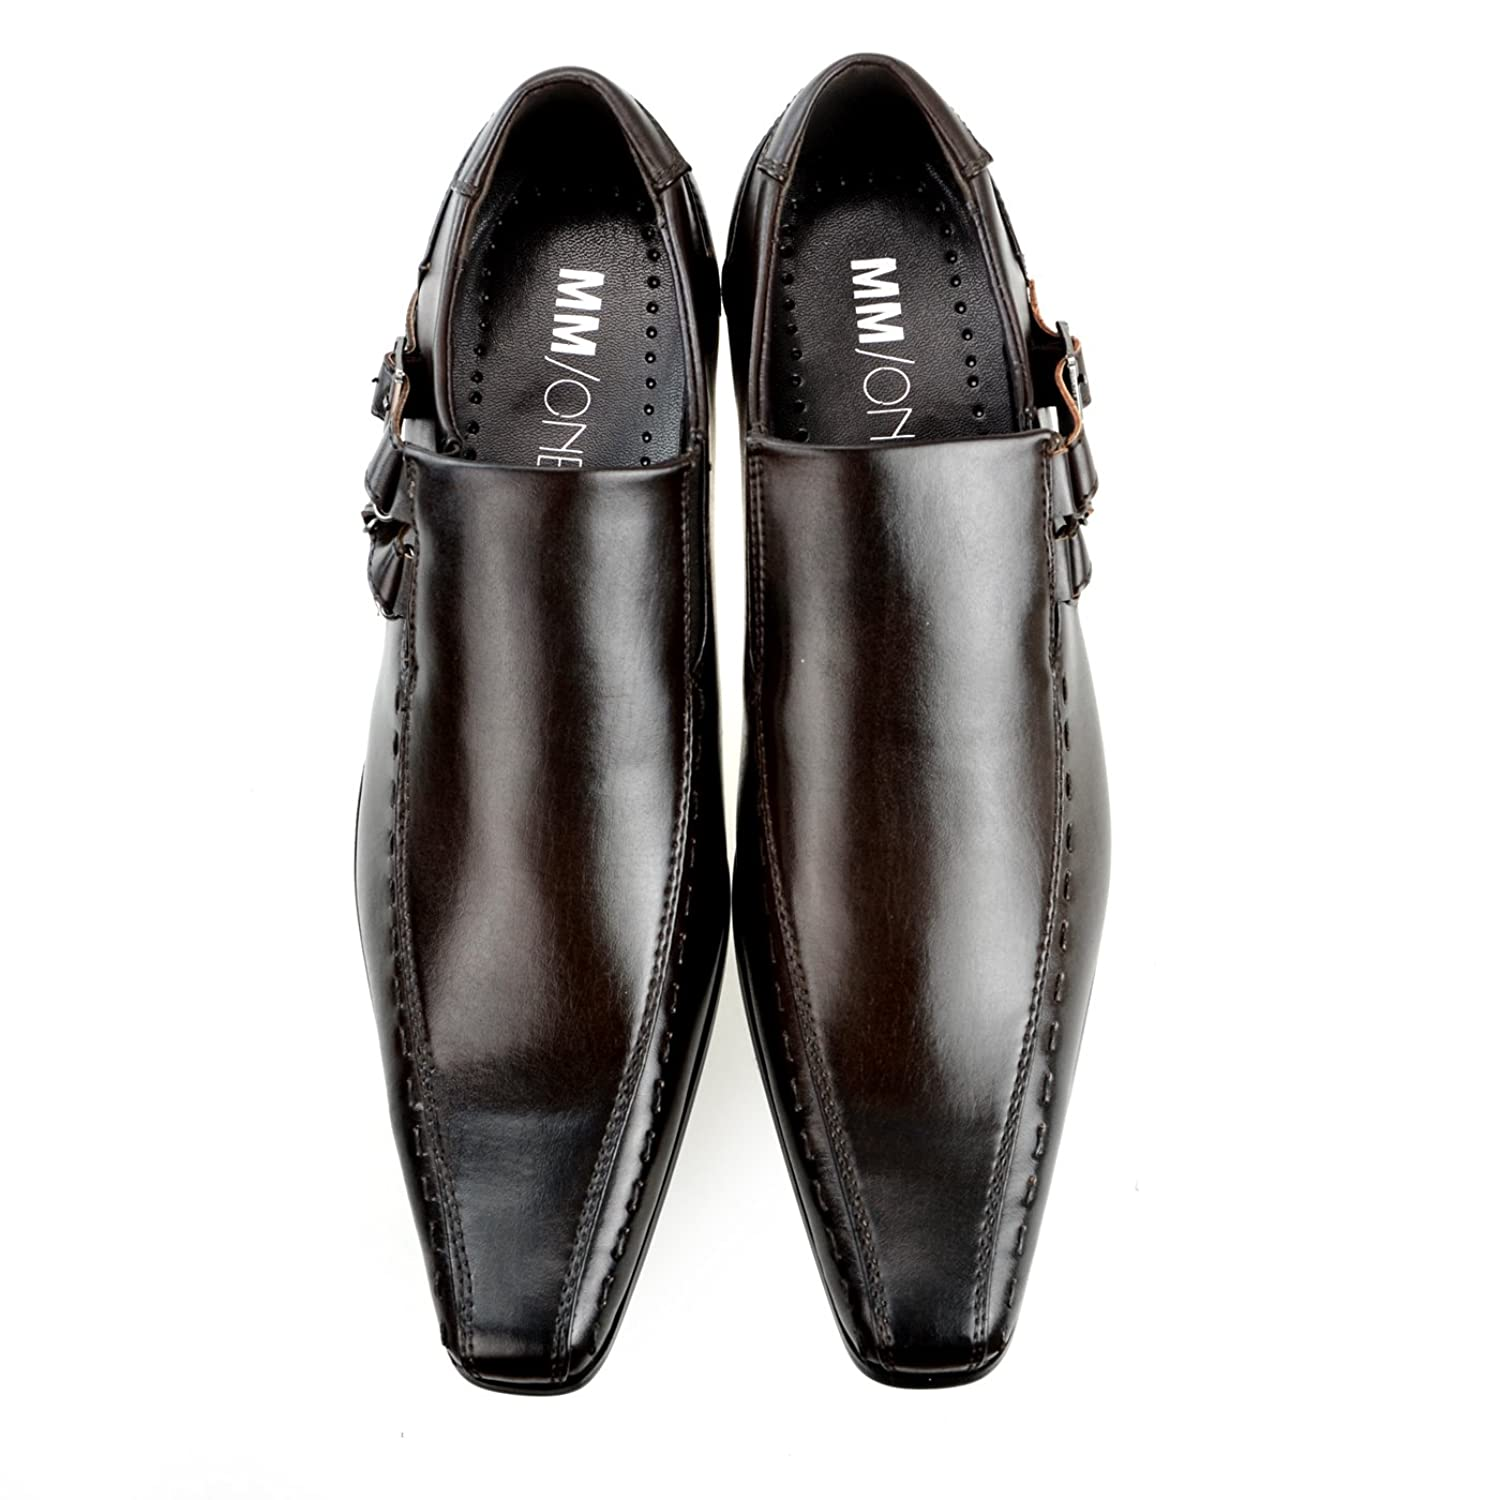 MM/ONE Oxford Men's shoes Straight chip Bicycle Toe monkstrap Slip-on Loafers low-cut Black Dark Brown